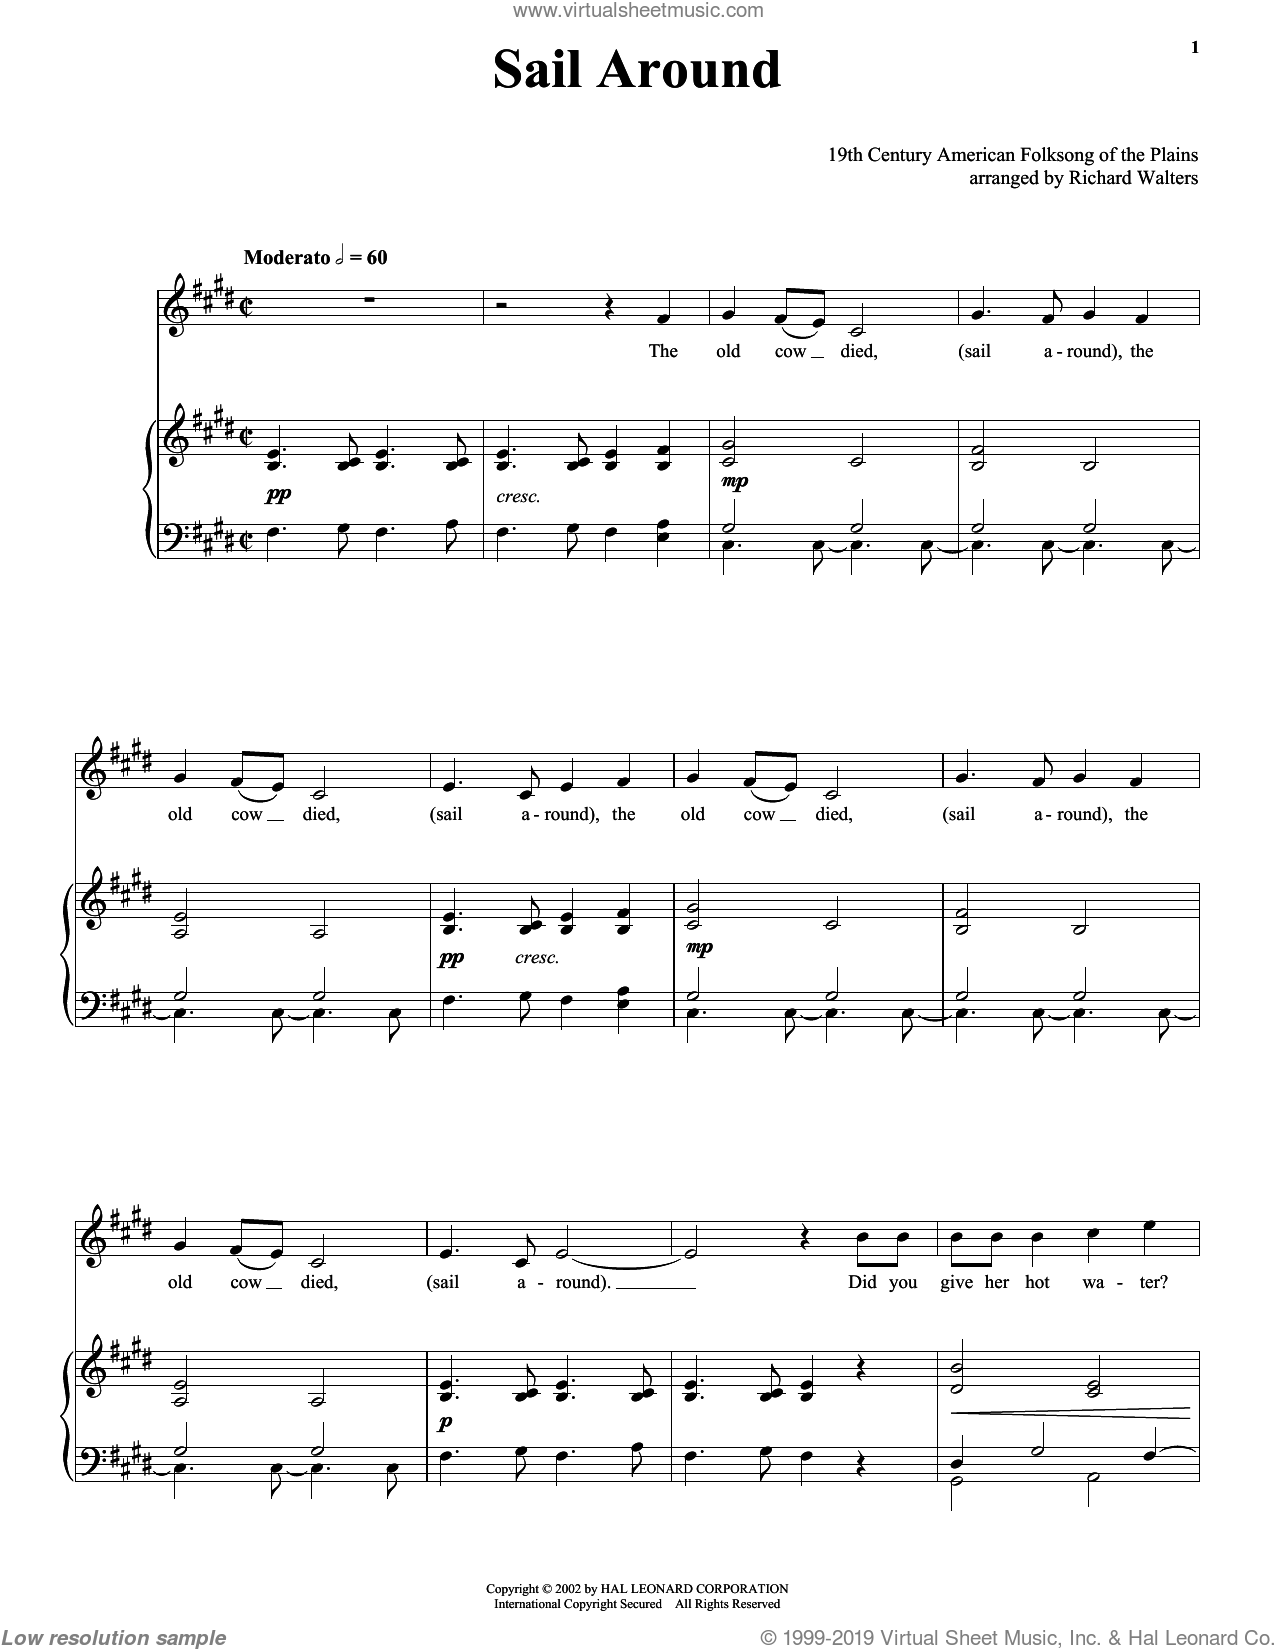 Sail Around sheet music for voice and piano. Score Image Preview.